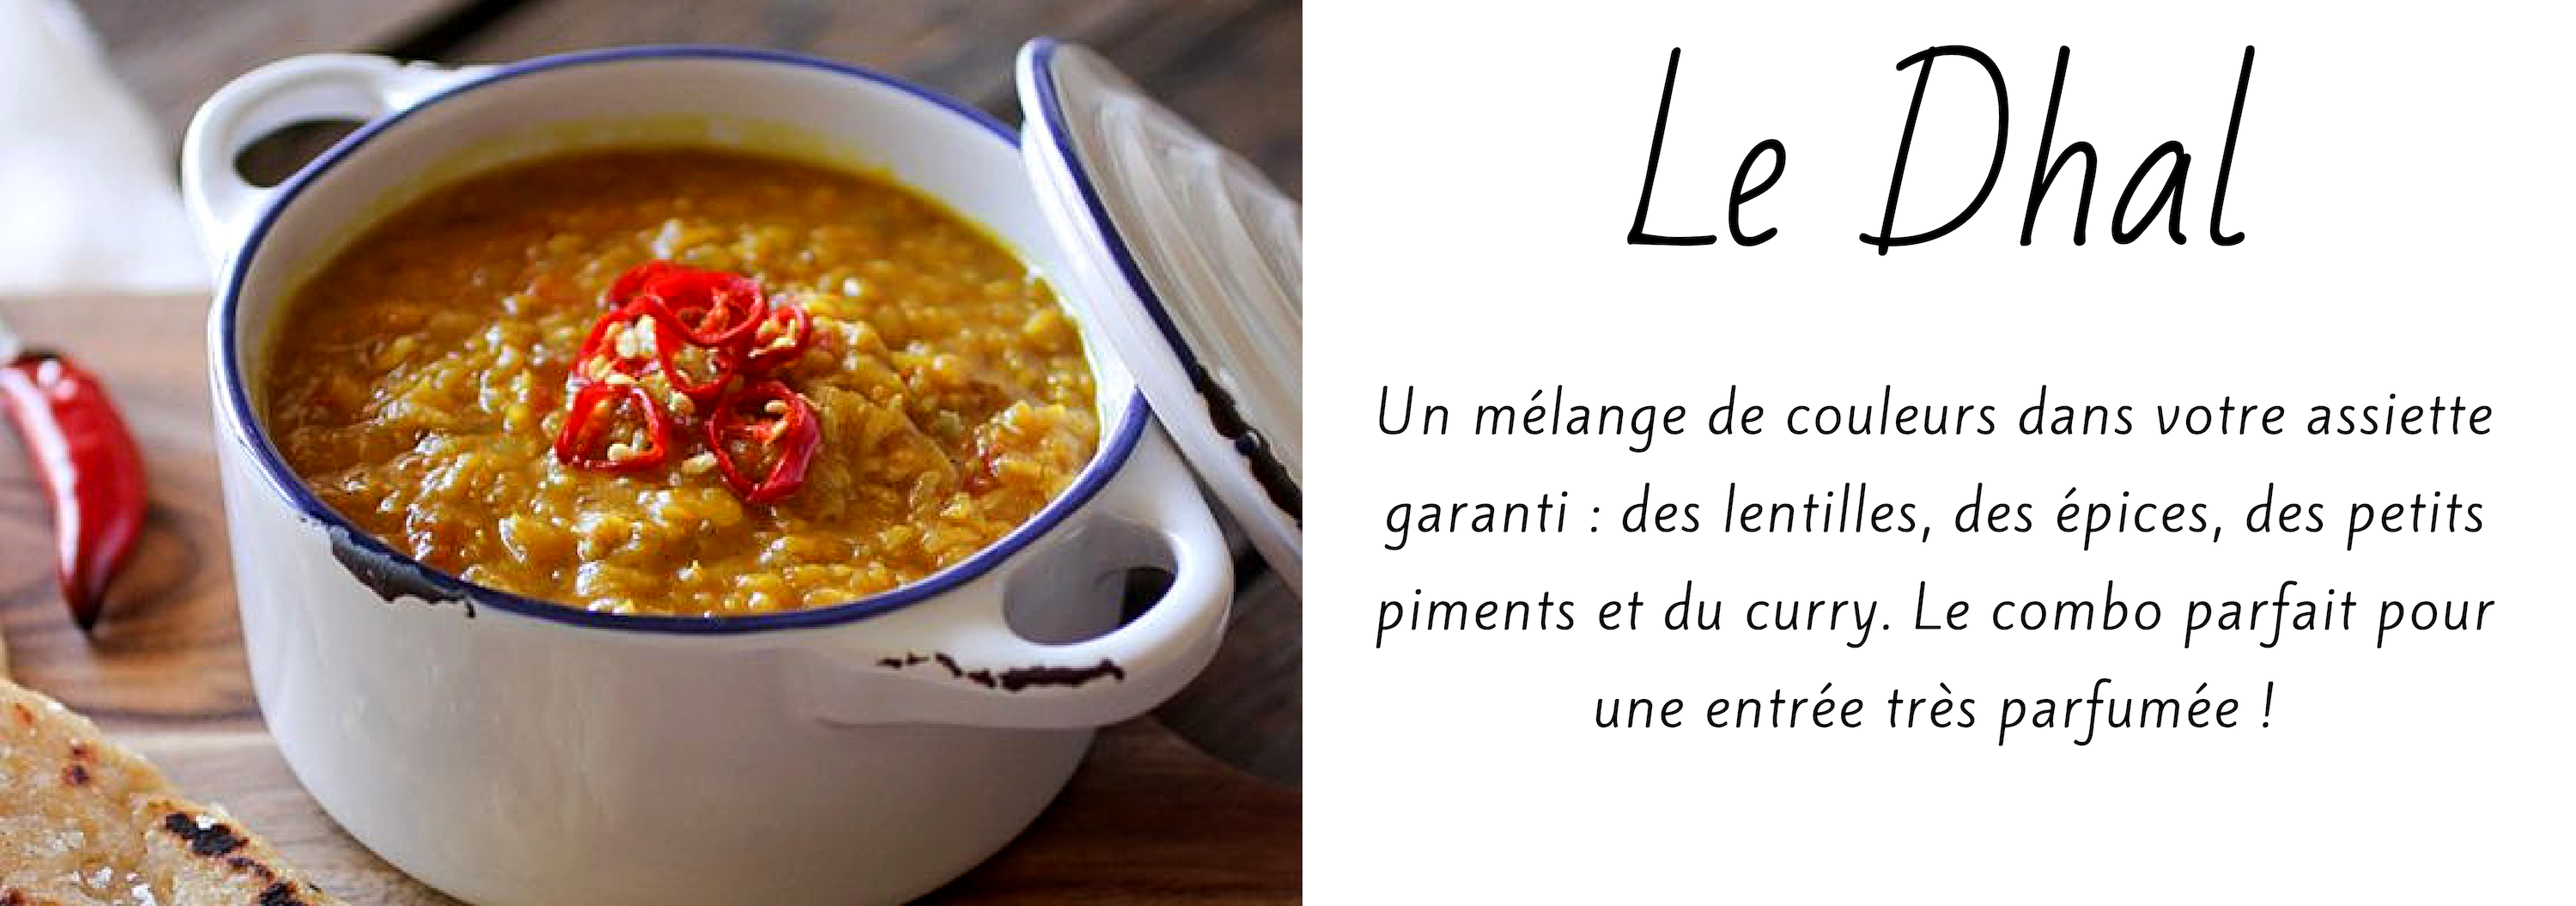 Le Dhal